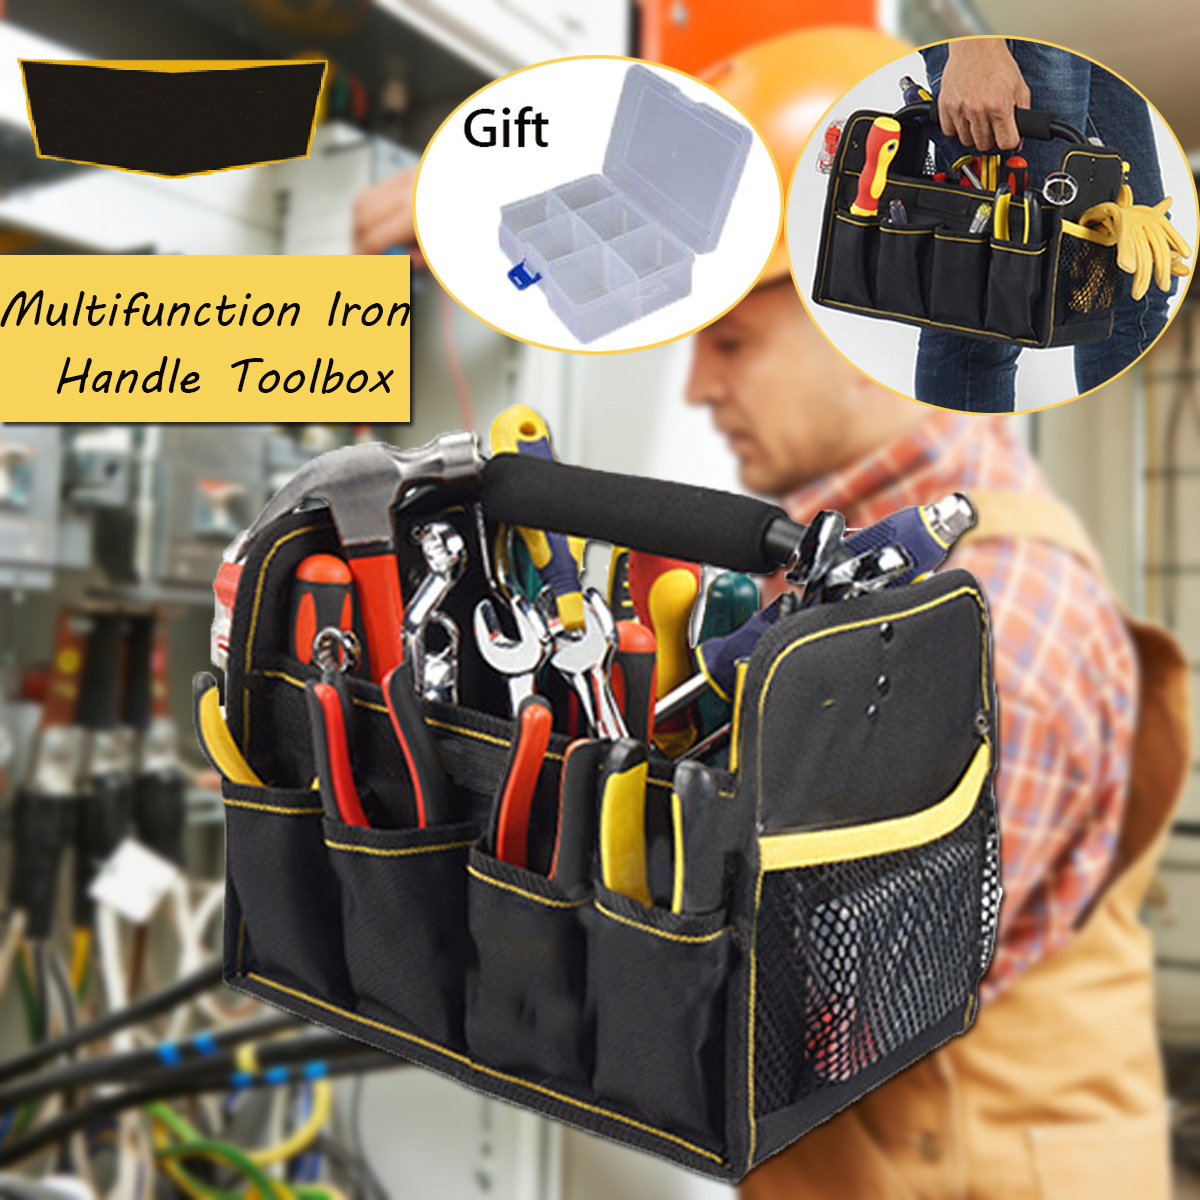 27 Bags Large Capacity Electrician Tools Bag Oxford Cloth Waterproof Single Shoulder Multifunction Repair Tool Organizers 1 pcs tool kit pack hardware repair kit tool bag electrician work multifunction durable mechanics oxford cloth bag organizer bag